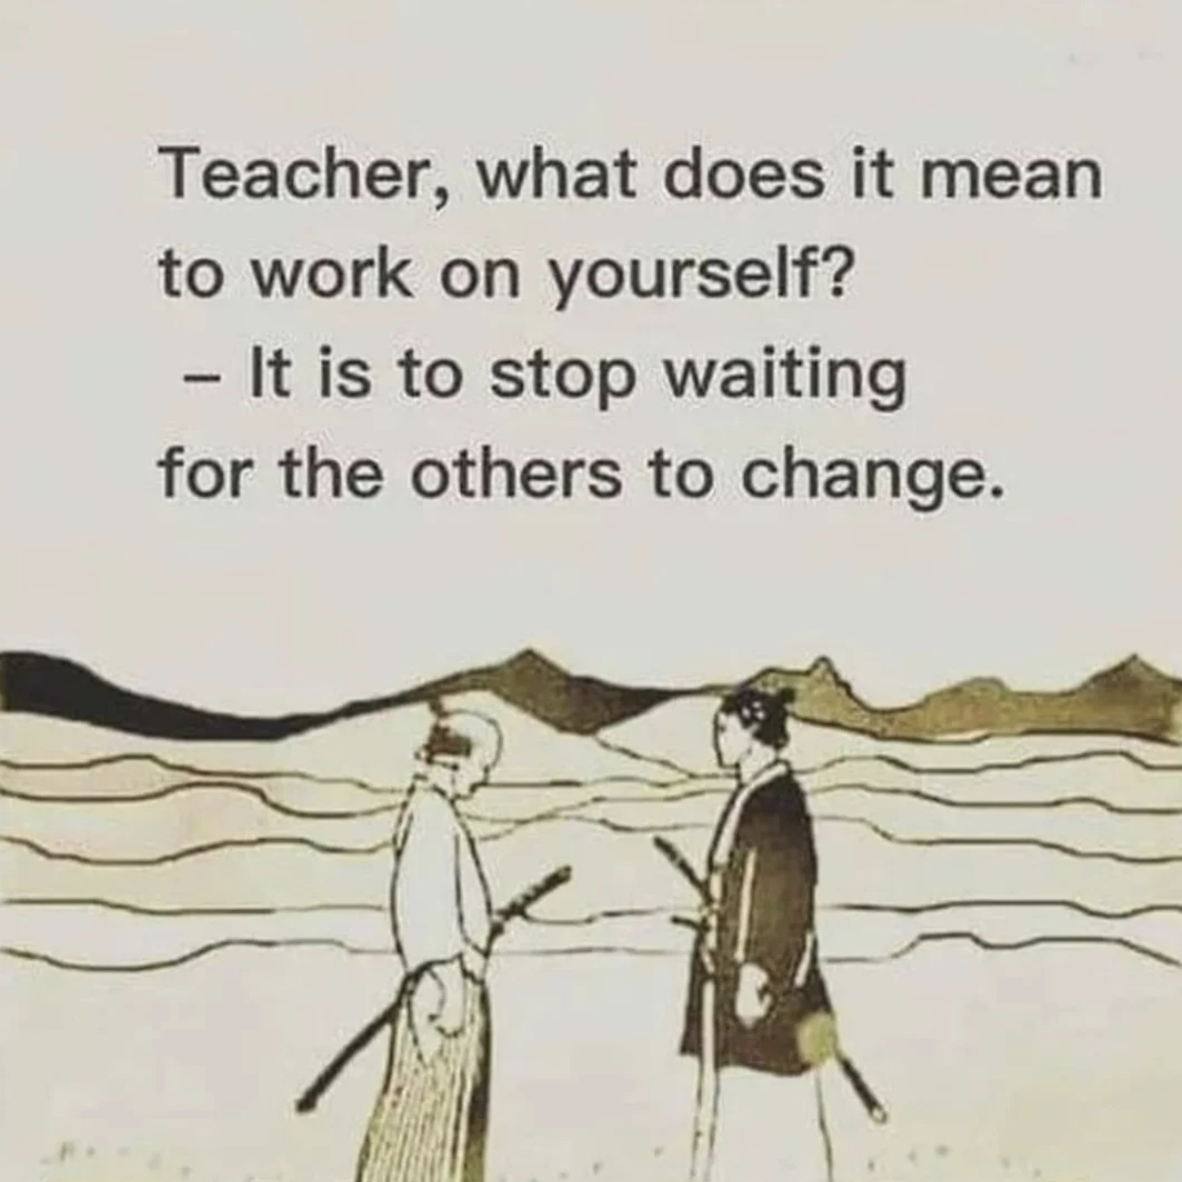 [Image] Stop waiting for the others to change. It all starts with you. So take action and change for the better.